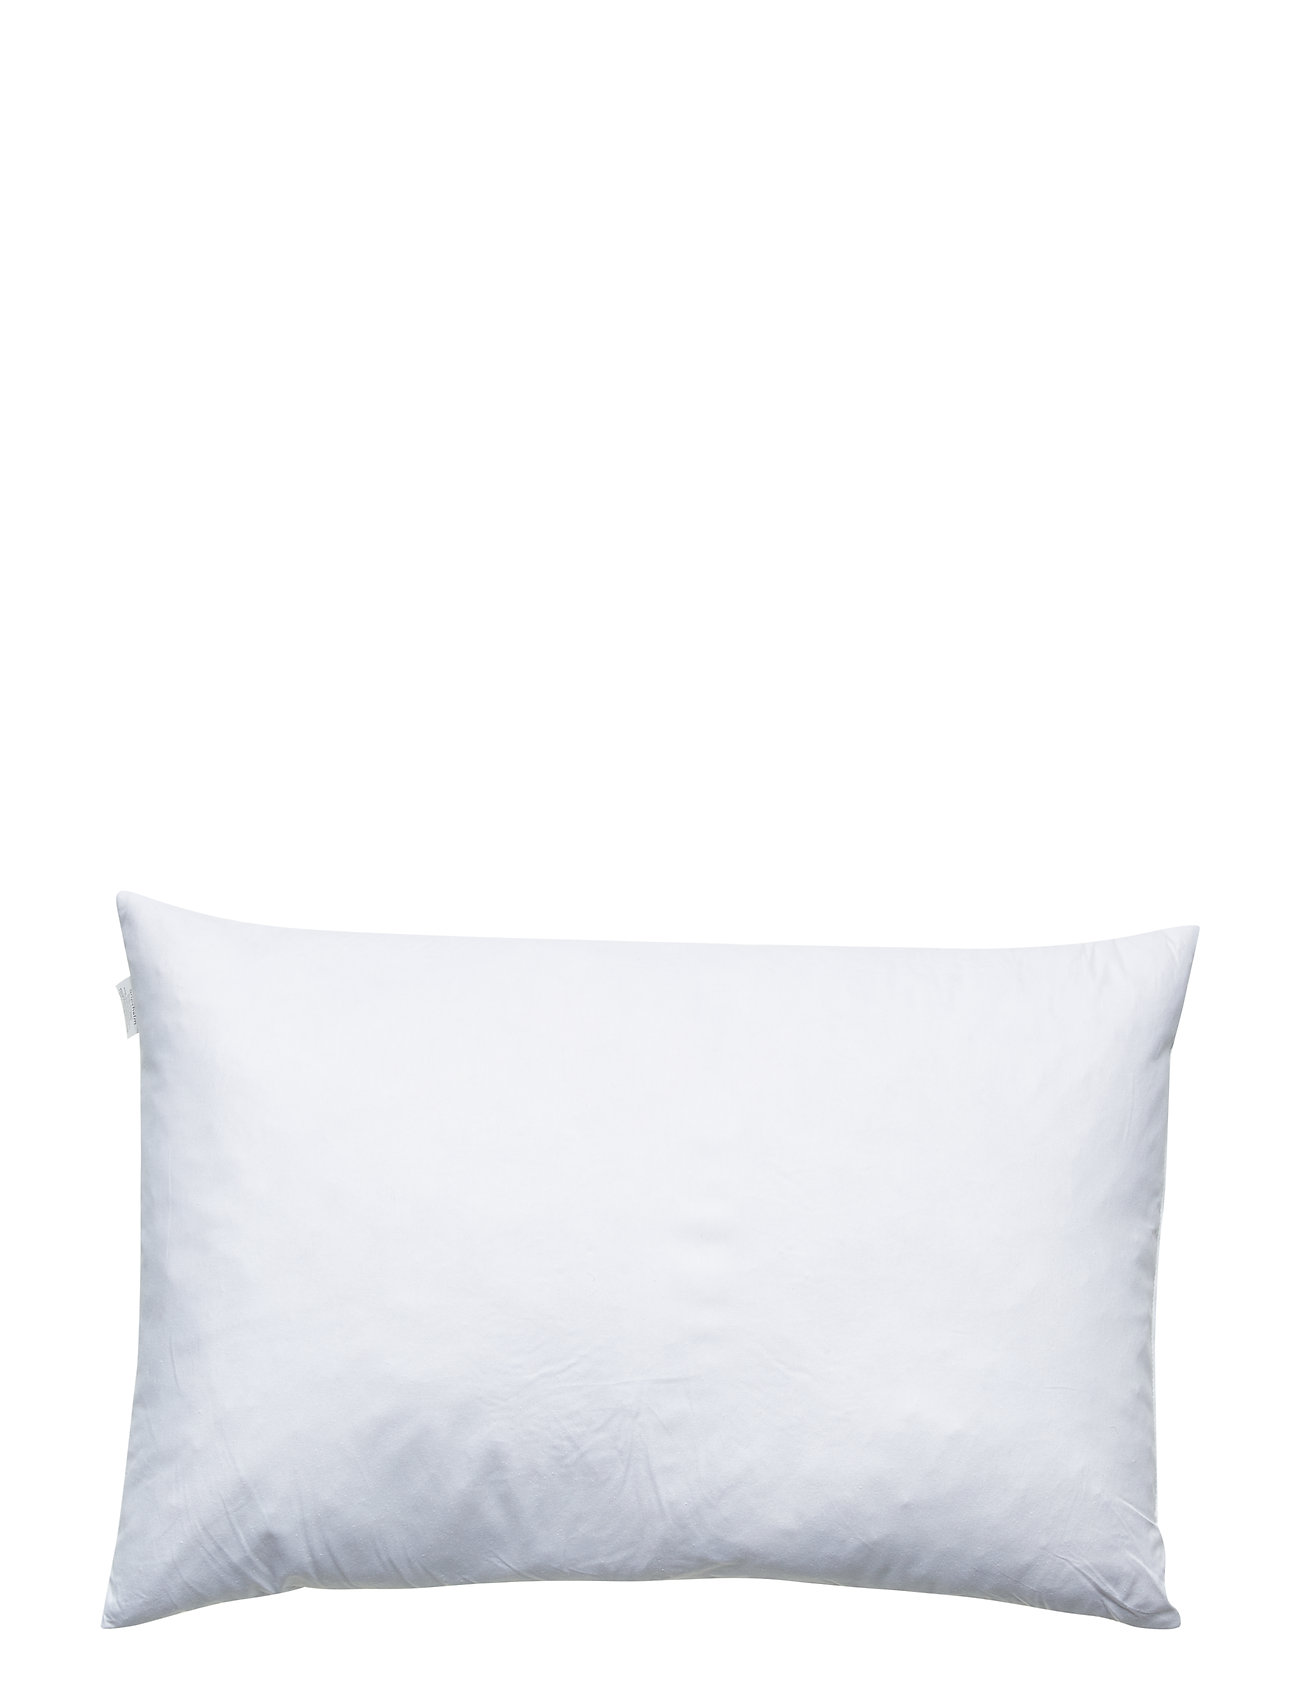 Gripsholm INNER CUSHION FEATHER - WHITE